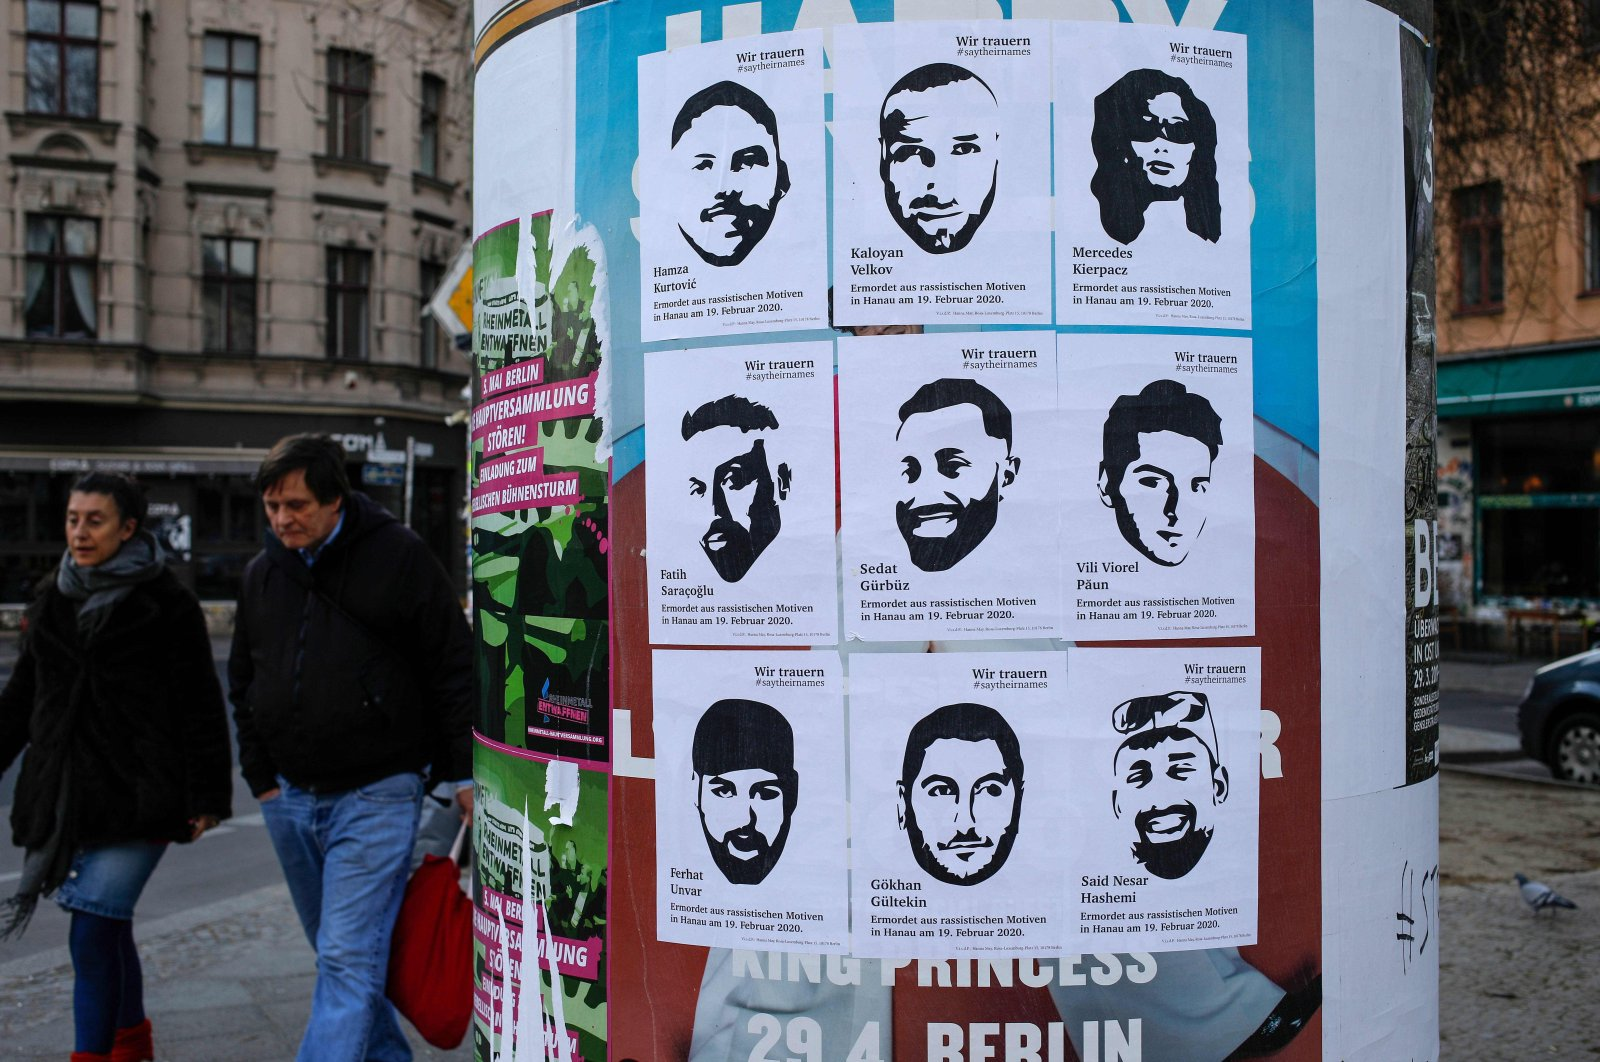 Posters with the pictures and names of the victims of a right-wing extremist gunman, who killed nine people in a racist terror attack in Hanau on Feb. 19, 2020, were posted up on an advertising column in Berlin's Kreuzberg district on Thursday, March 19, 2020. (AFP Photo)